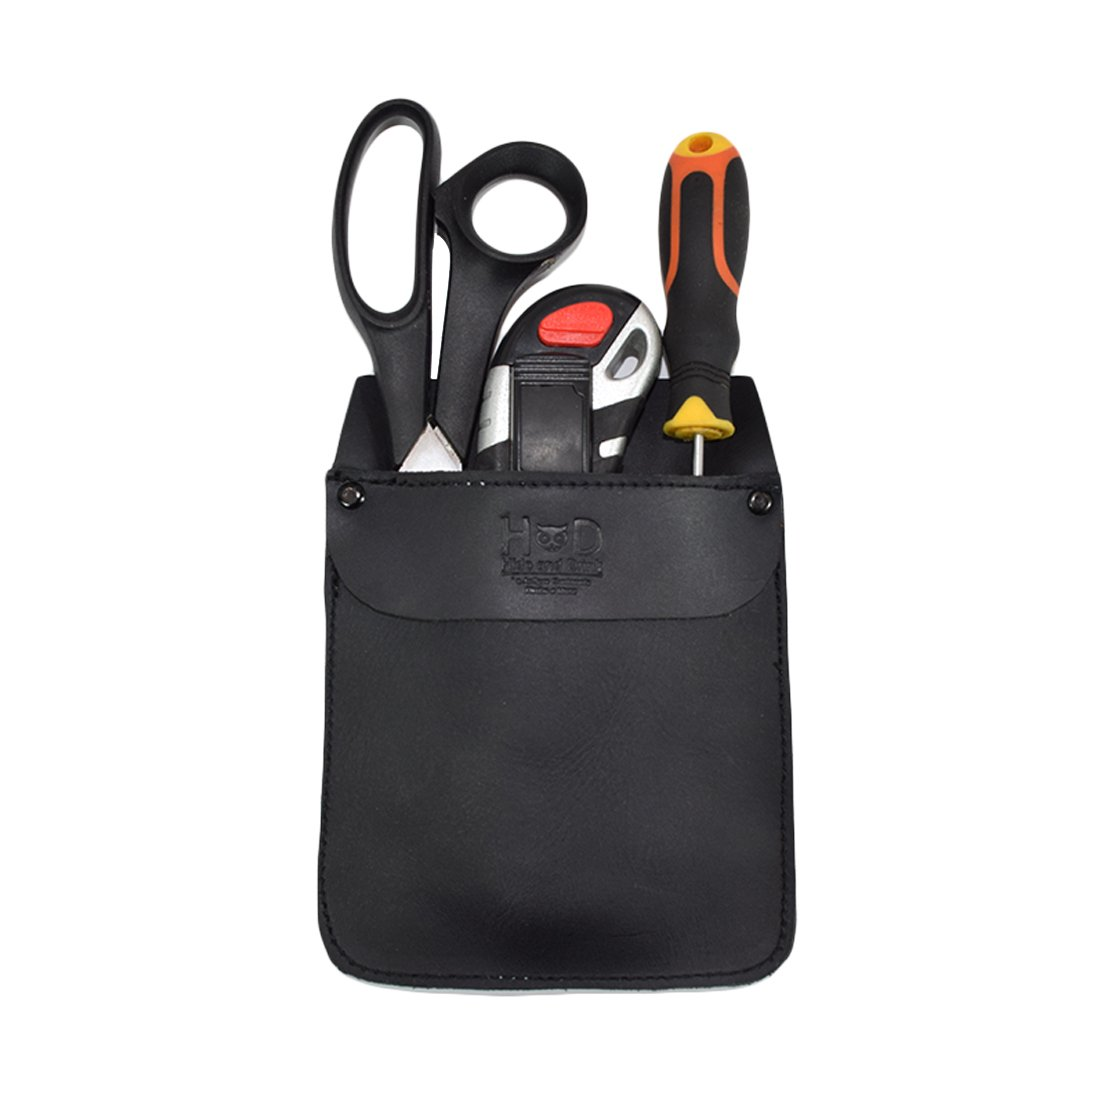 Durable Leather Work Pocket Organizer for Tools/Pens, Office & Work Essentials Handmade by Hide & Drink :: Charcoal Black